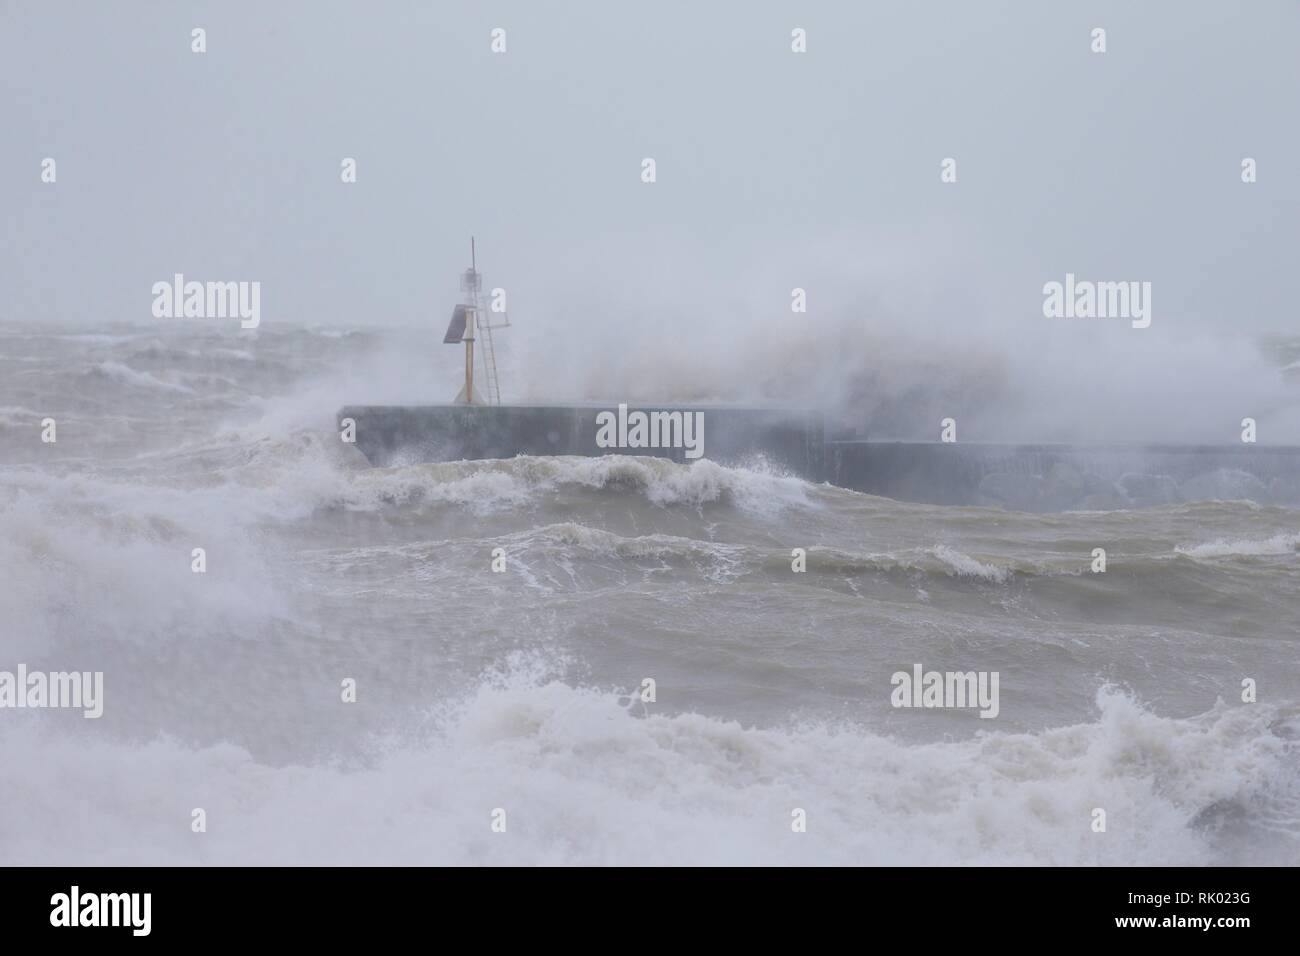 Hastings, East Sussex, UK. 08 Feb, 2019. UK Weather: Storm Erik. Gale force winds bring raging seas to Hastings in East Sussex. The harbour arm takes a battering from the waves. © Paul Lawrenson 2019, Photo Credit: Paul Lawrenson / Alamy Live News Stock Photo